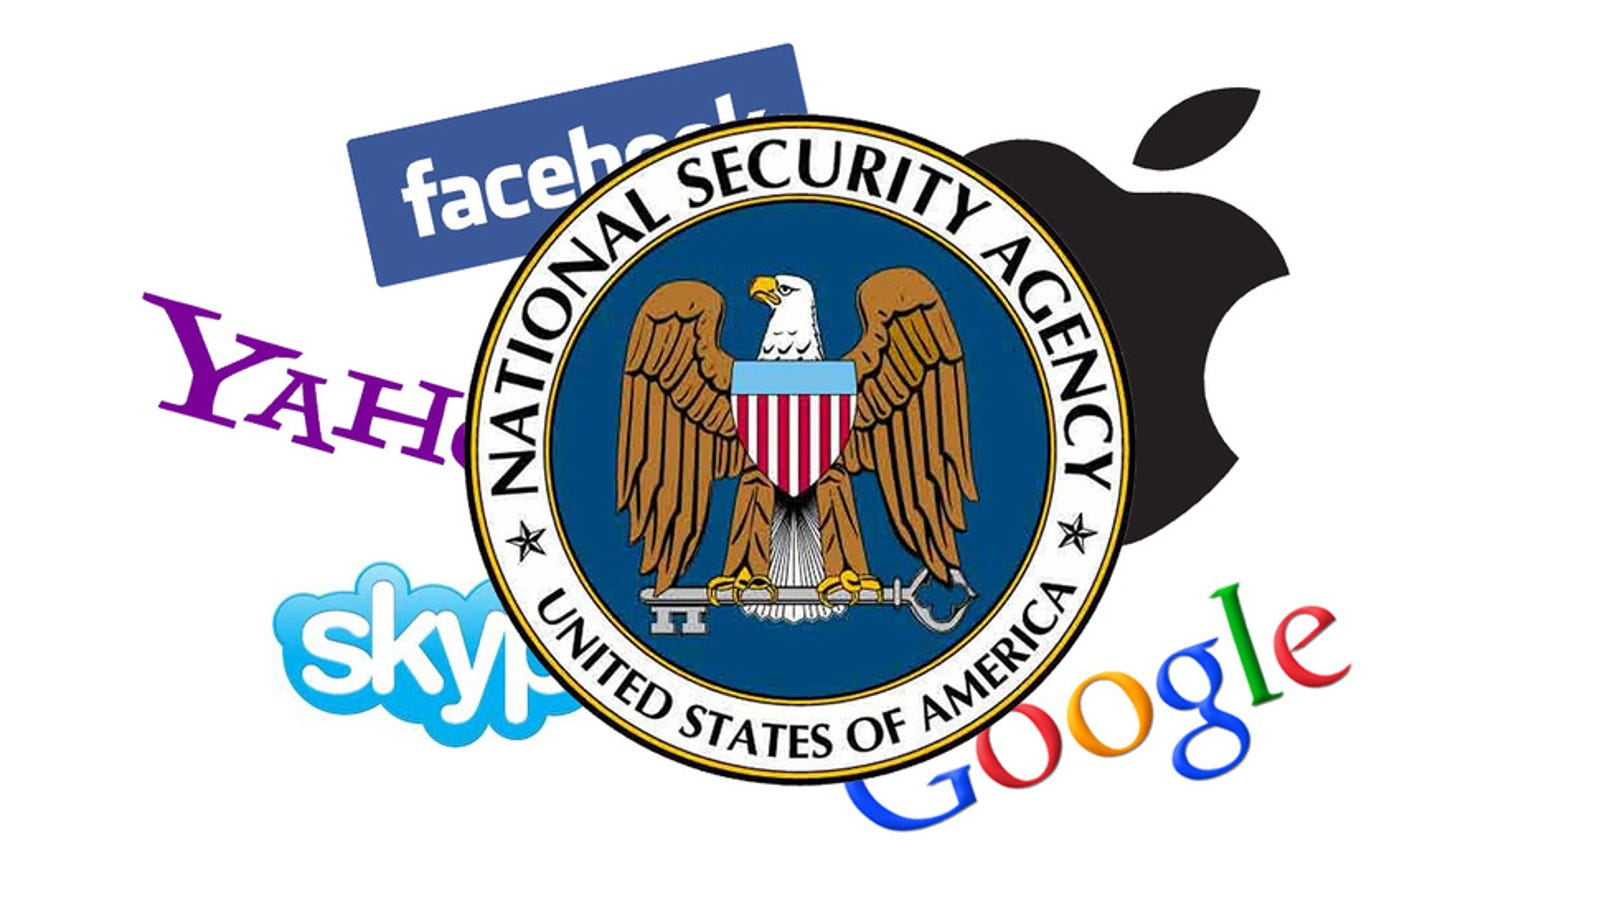 Confirmed Nsa Paid Google Microsoft Others Millions For Prism Aid